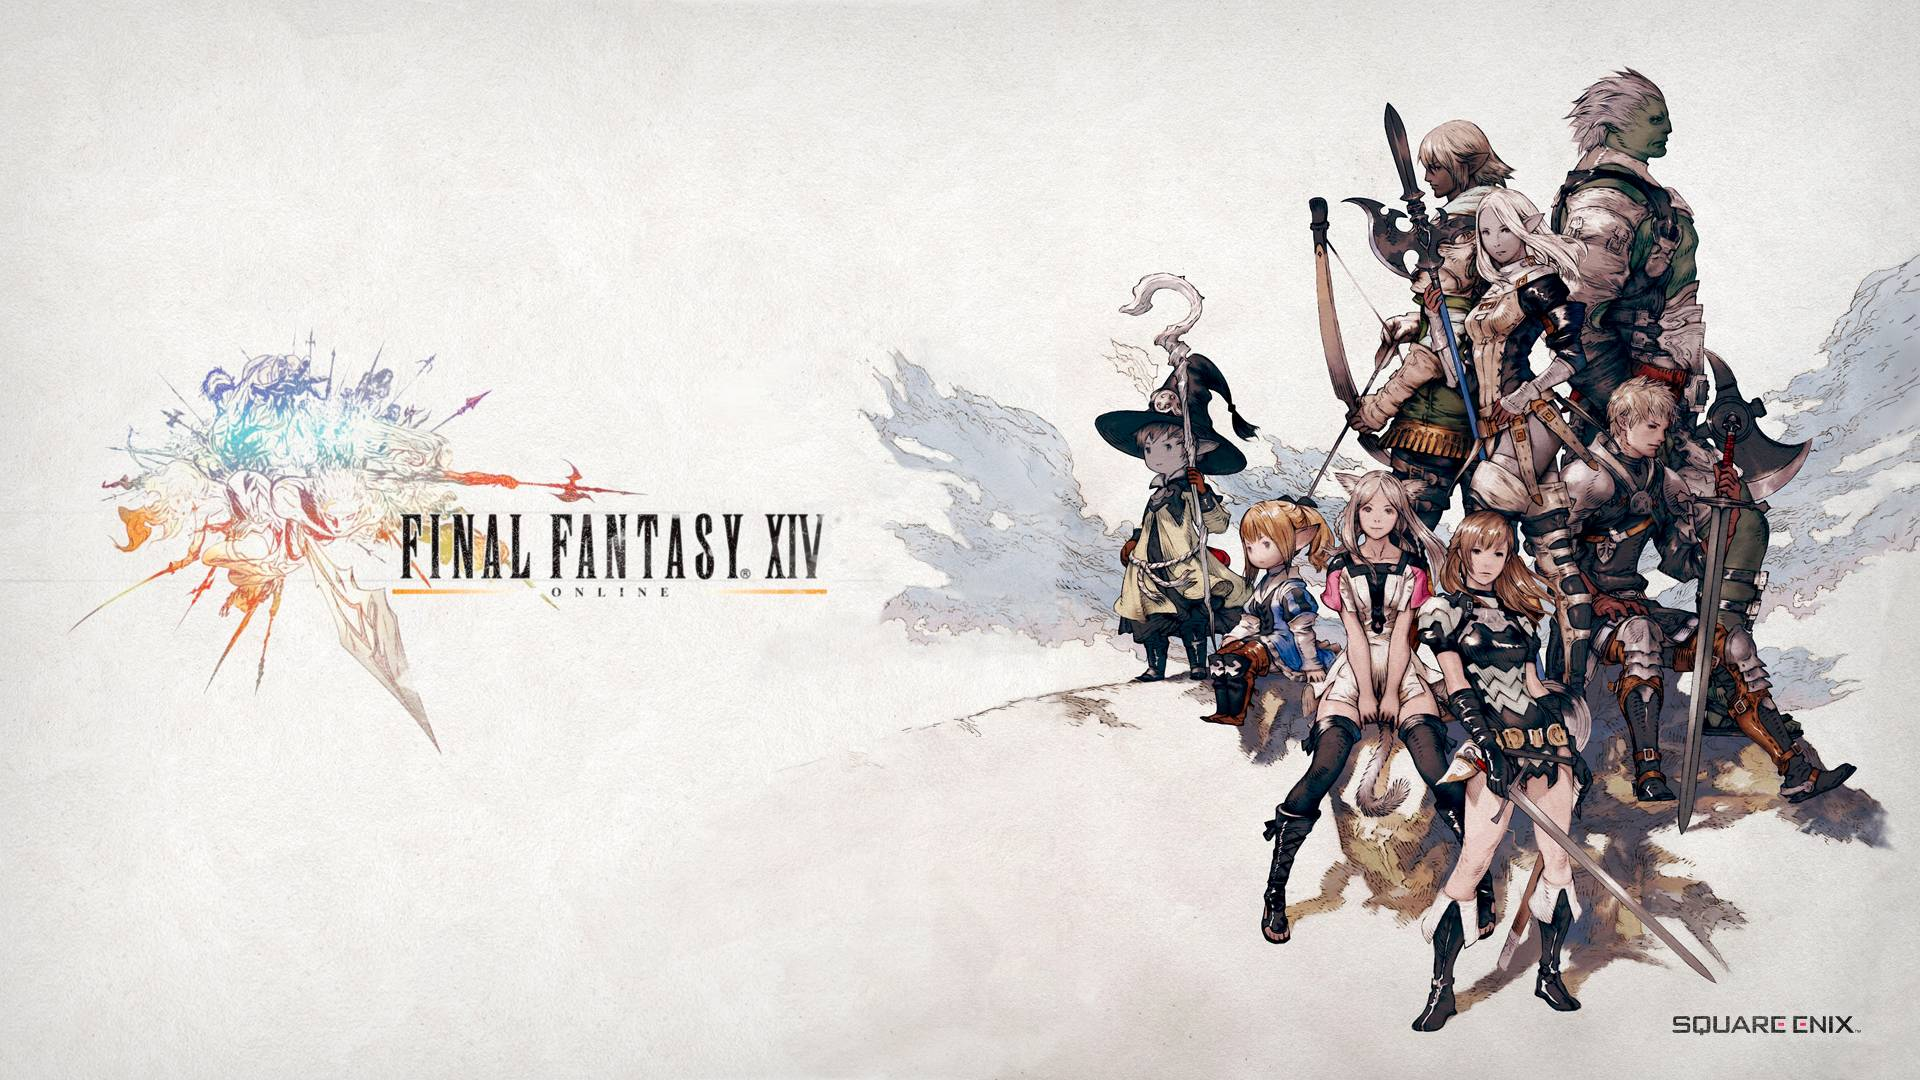 Final Fantasy XIV: FINAL FANTASY XIV Documentary, часть первая: